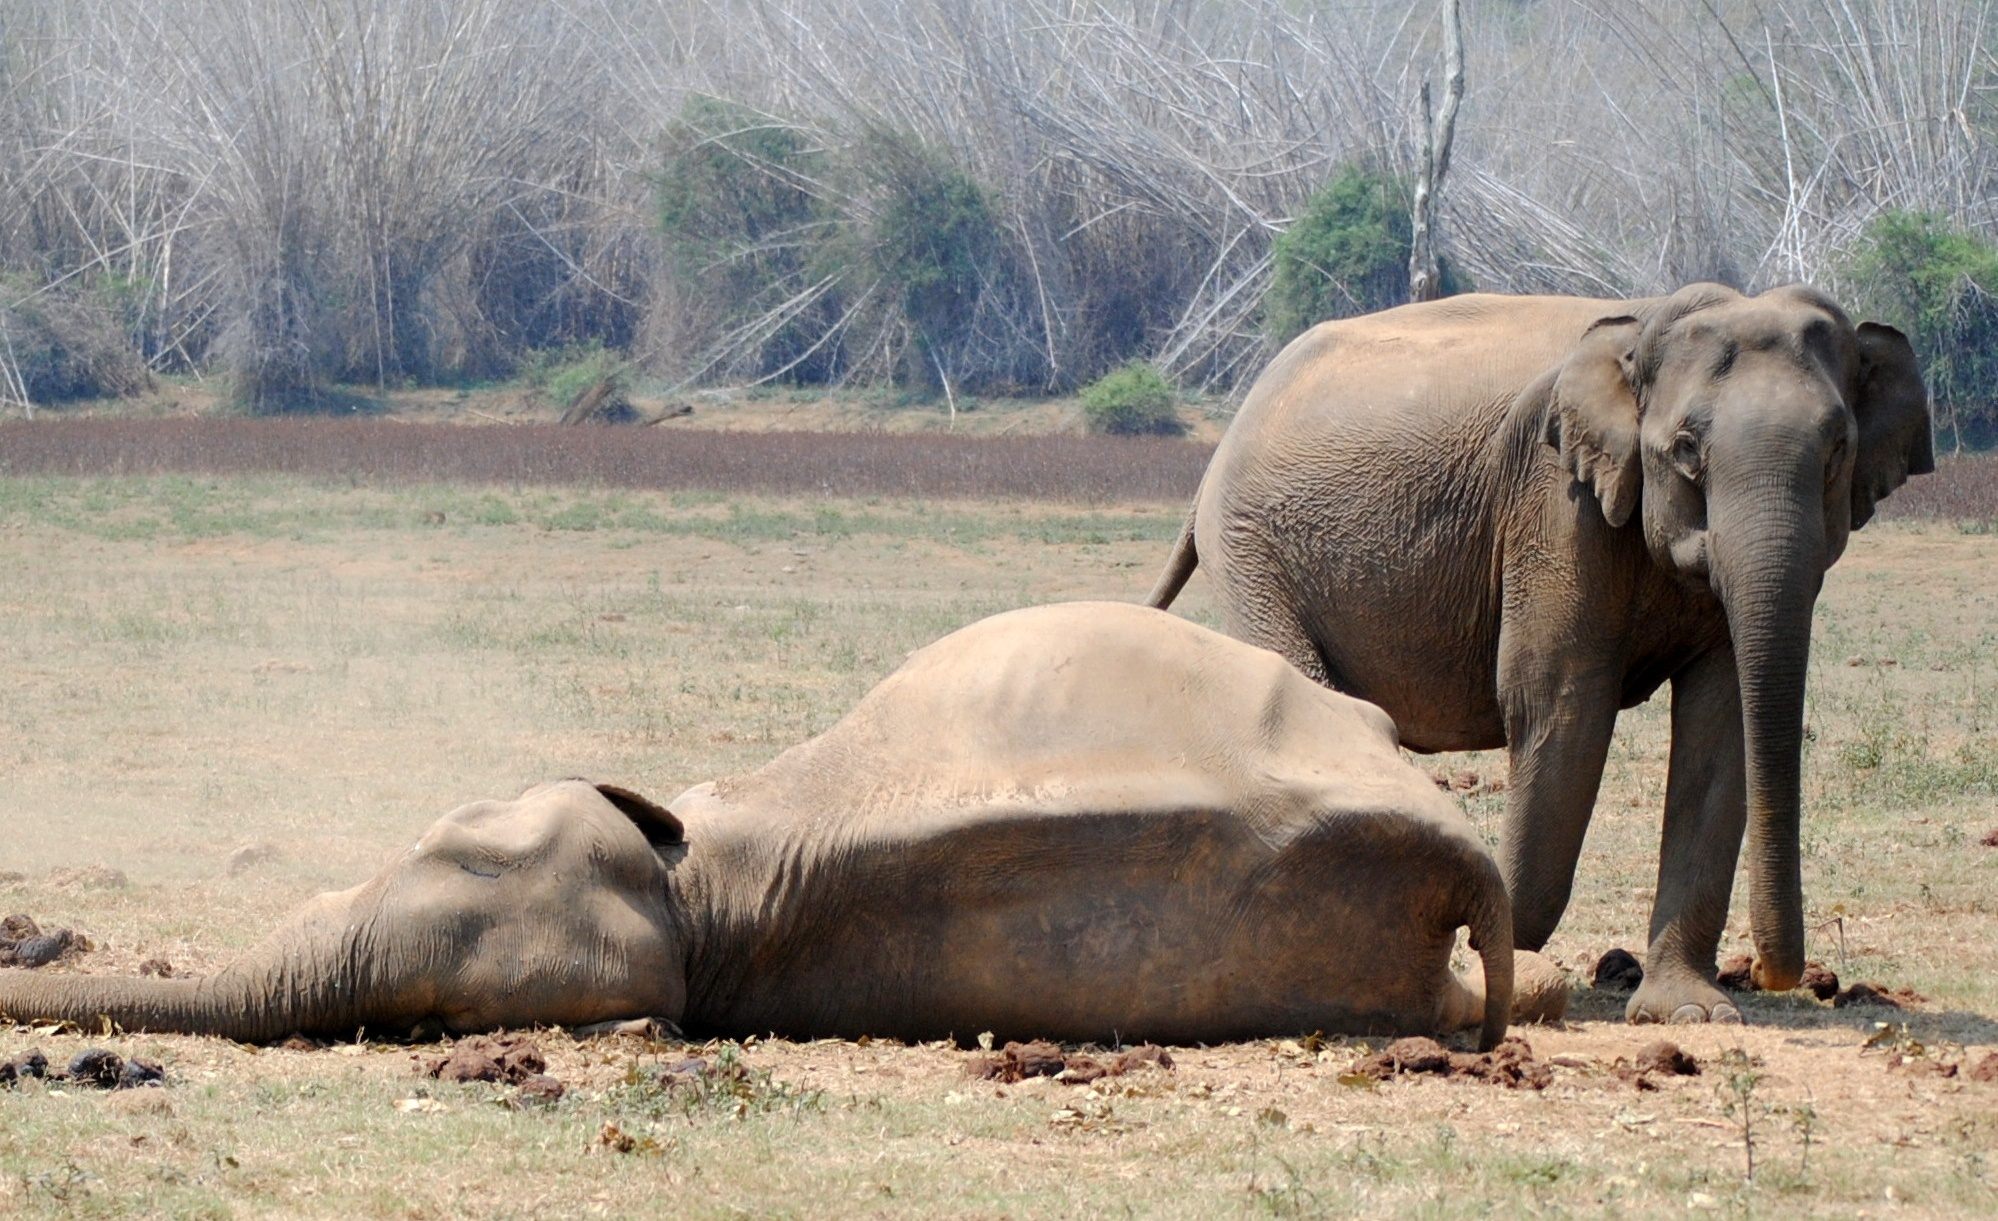 An elephant matriarch with an old female